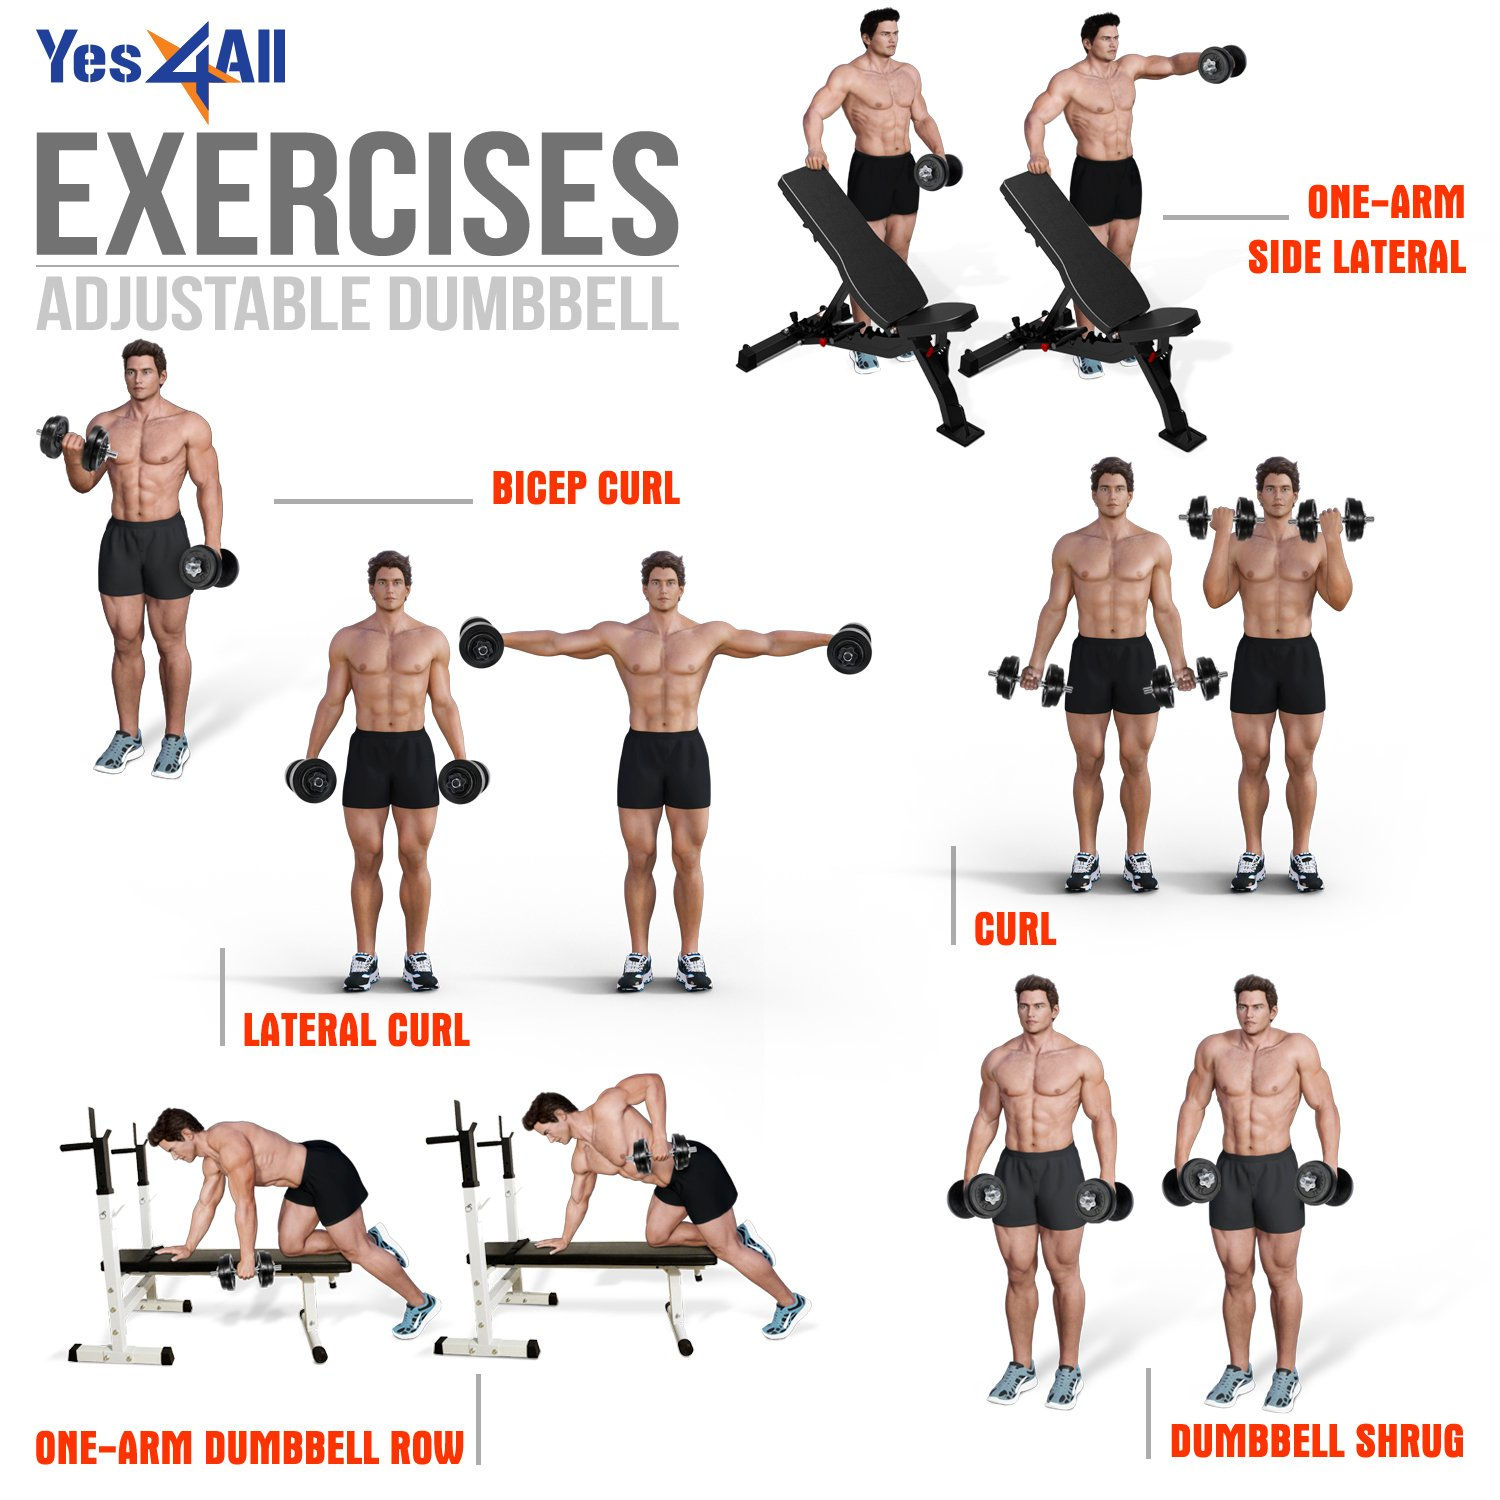 Yes4All Adjustable Dumbbells - 52.5 lb Dumbbell Weights (Single) by Yes4All (Image #8)